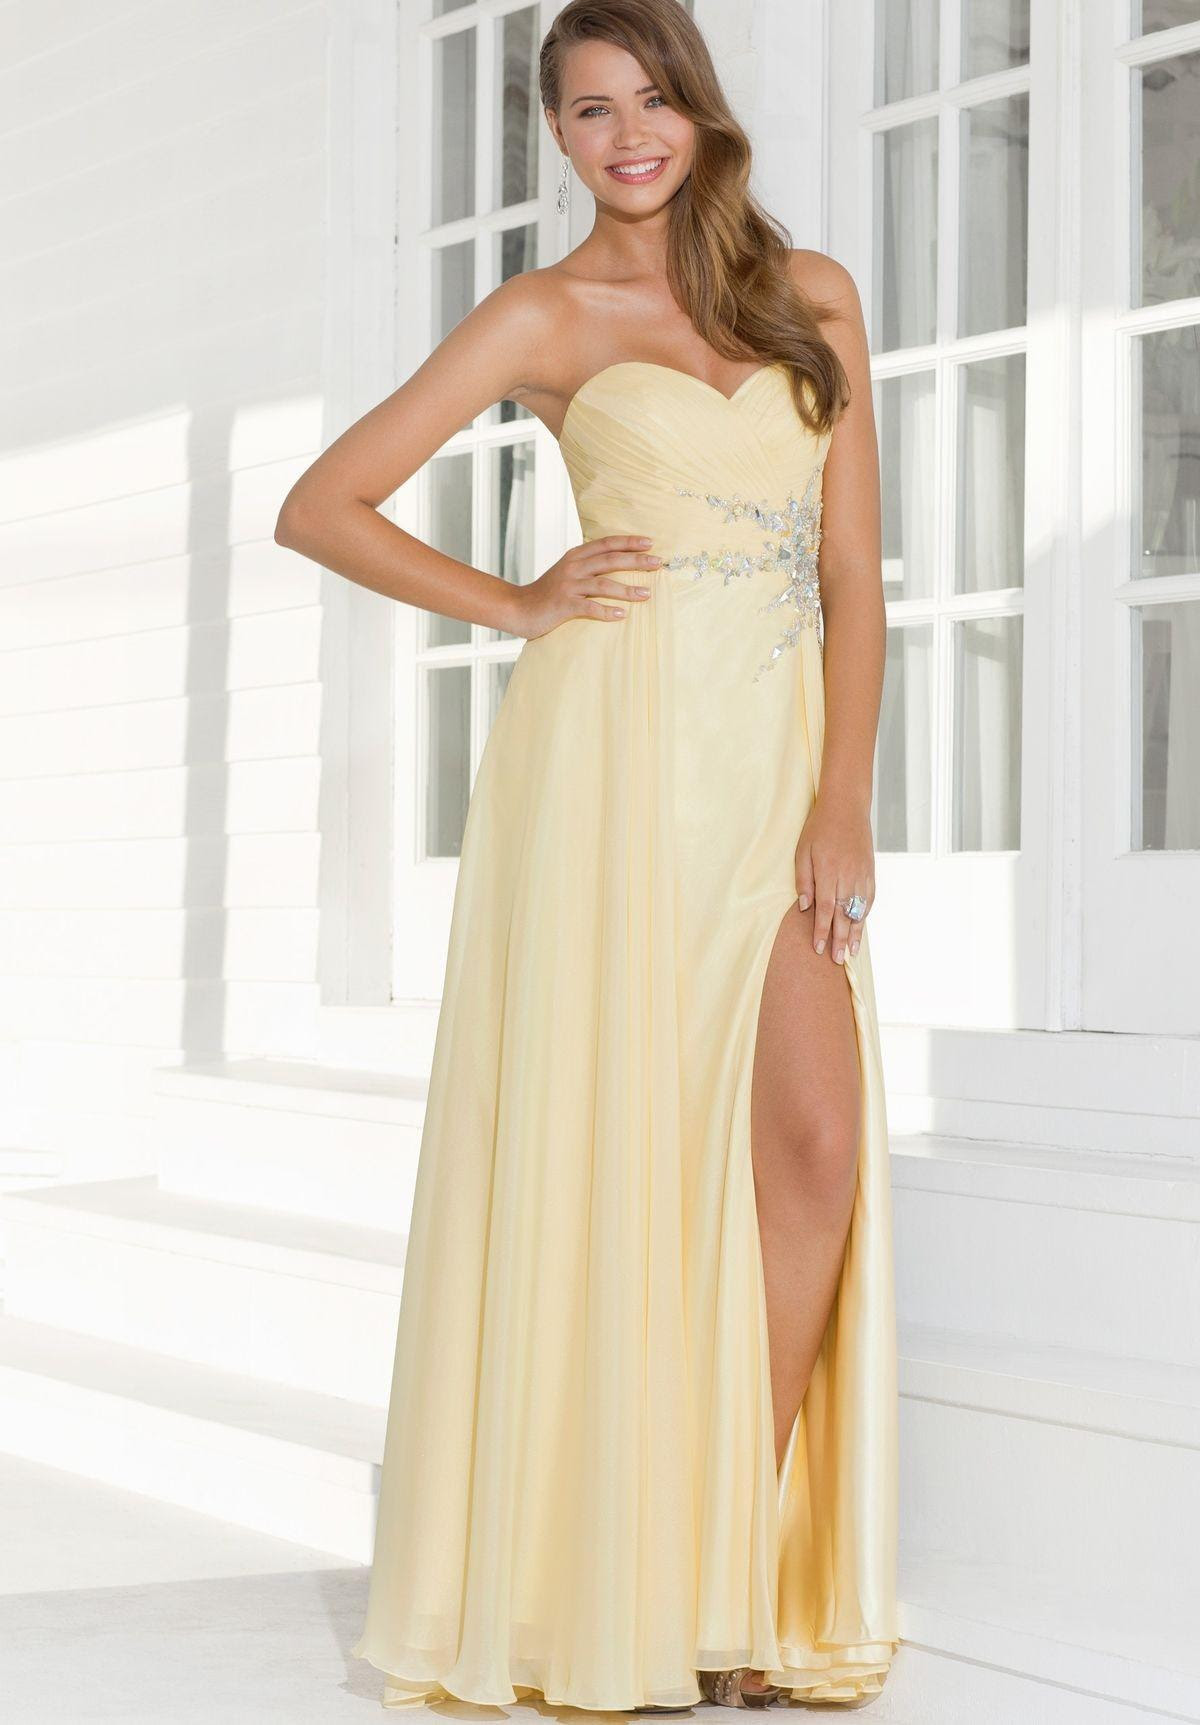 Elegant long dresses for evening